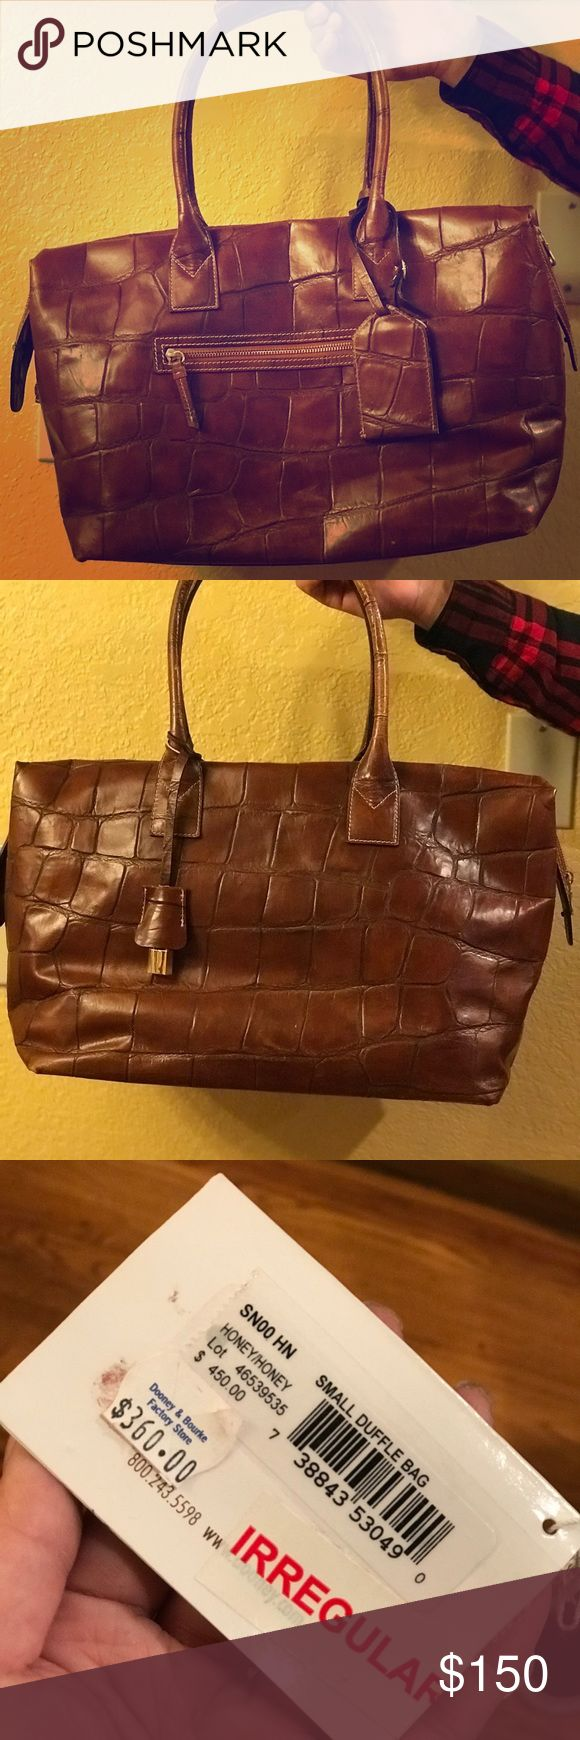 Dooney & Bourke small luggage Dooney & Bourke small luggage origianally purchased in year 2000. Great condition. Dooney & Bourke Bags Travel Bags